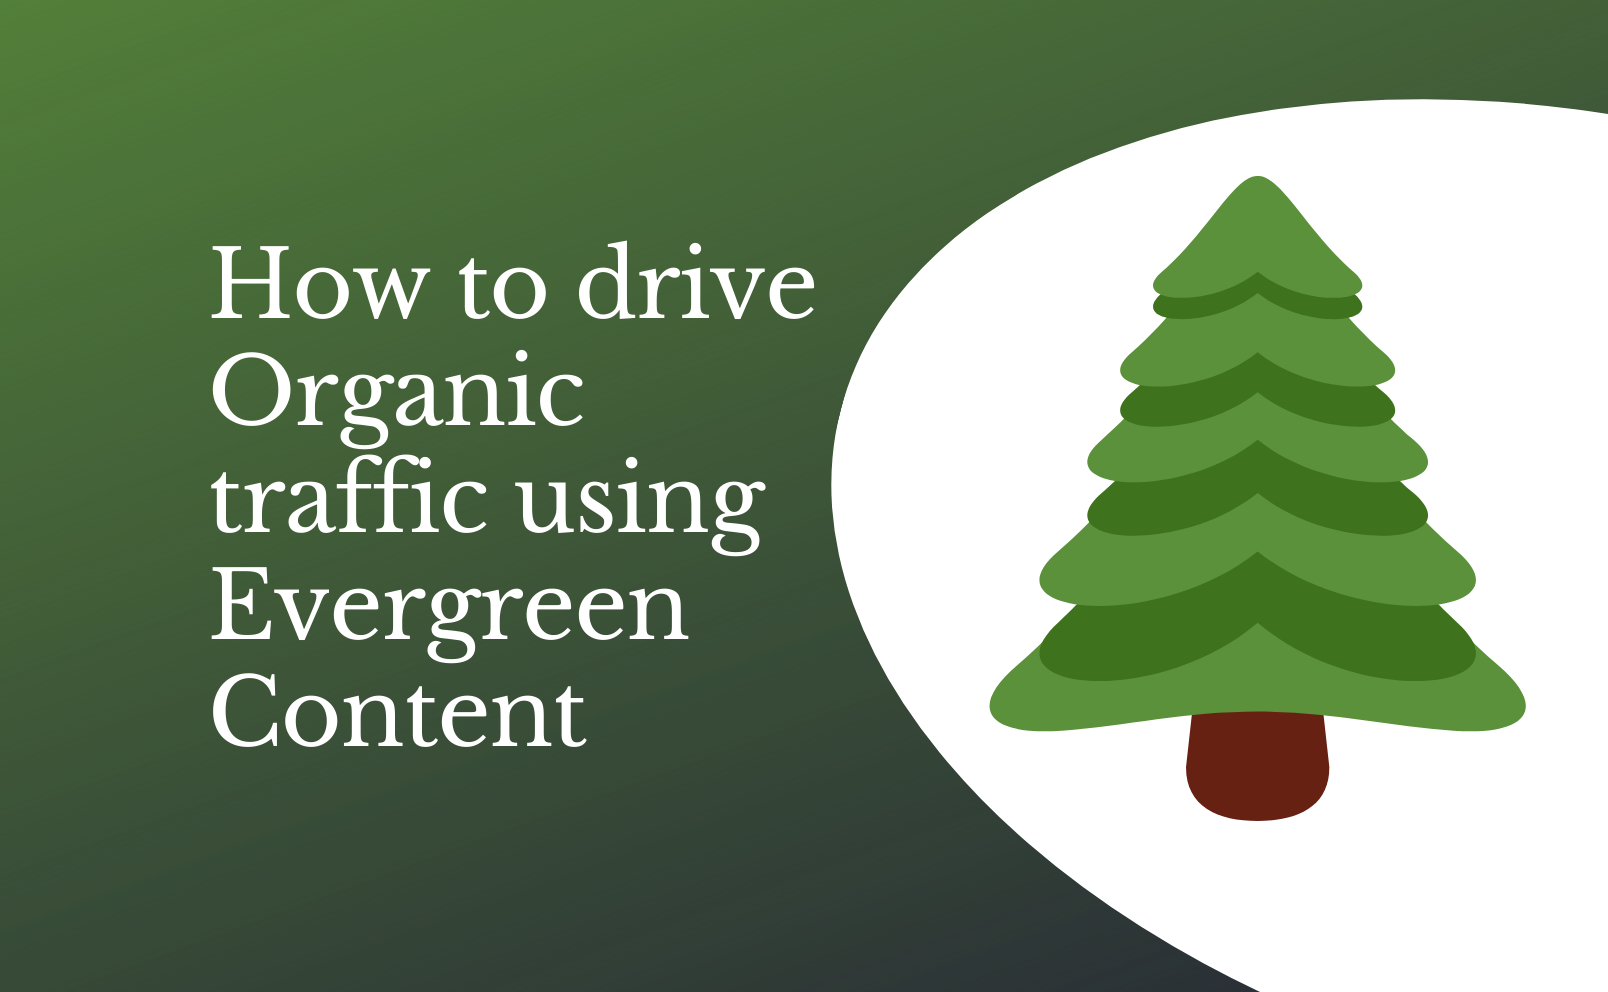 How to drive Organic traffic using Evergreen Content